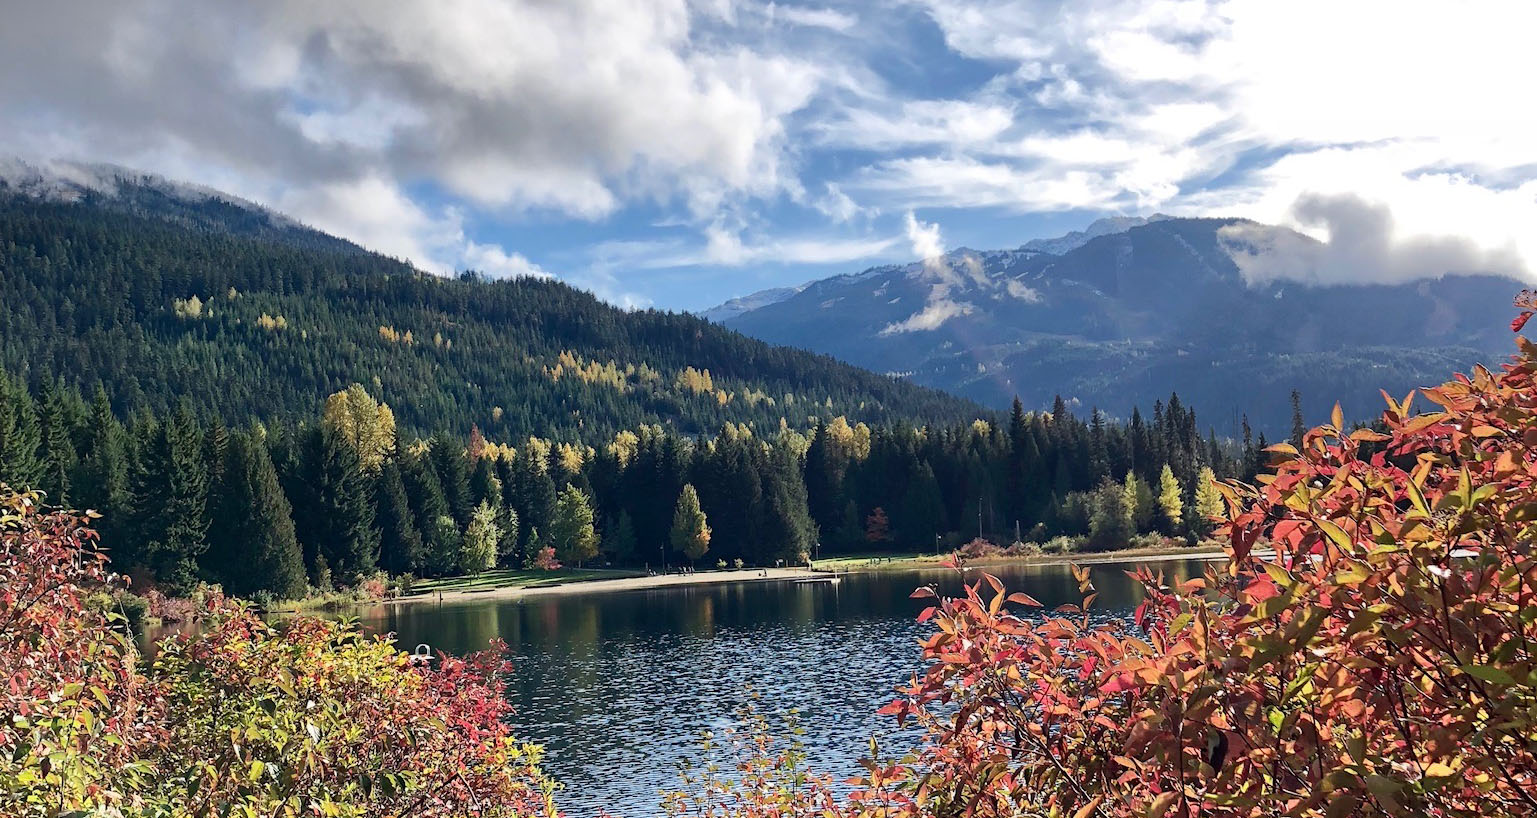 Lost Lake in Whistler, Canada